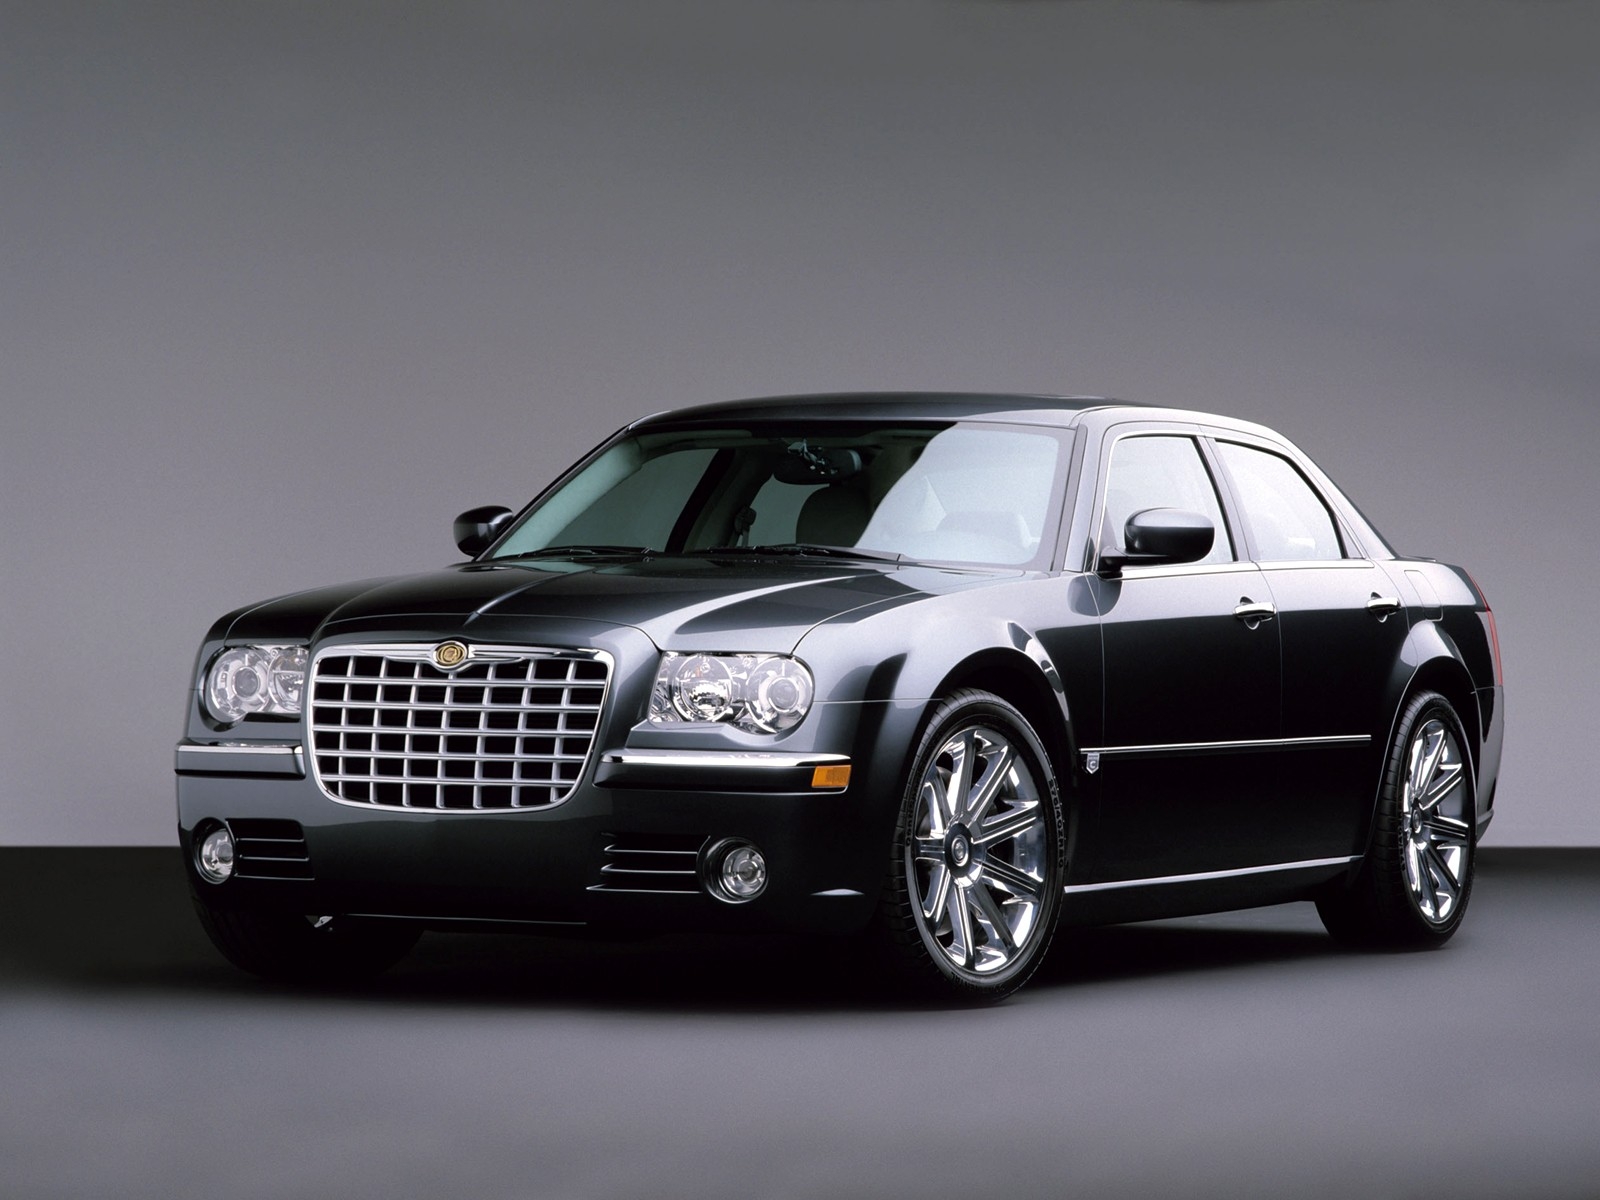 2009 Chrysler 300 C HEMI picture